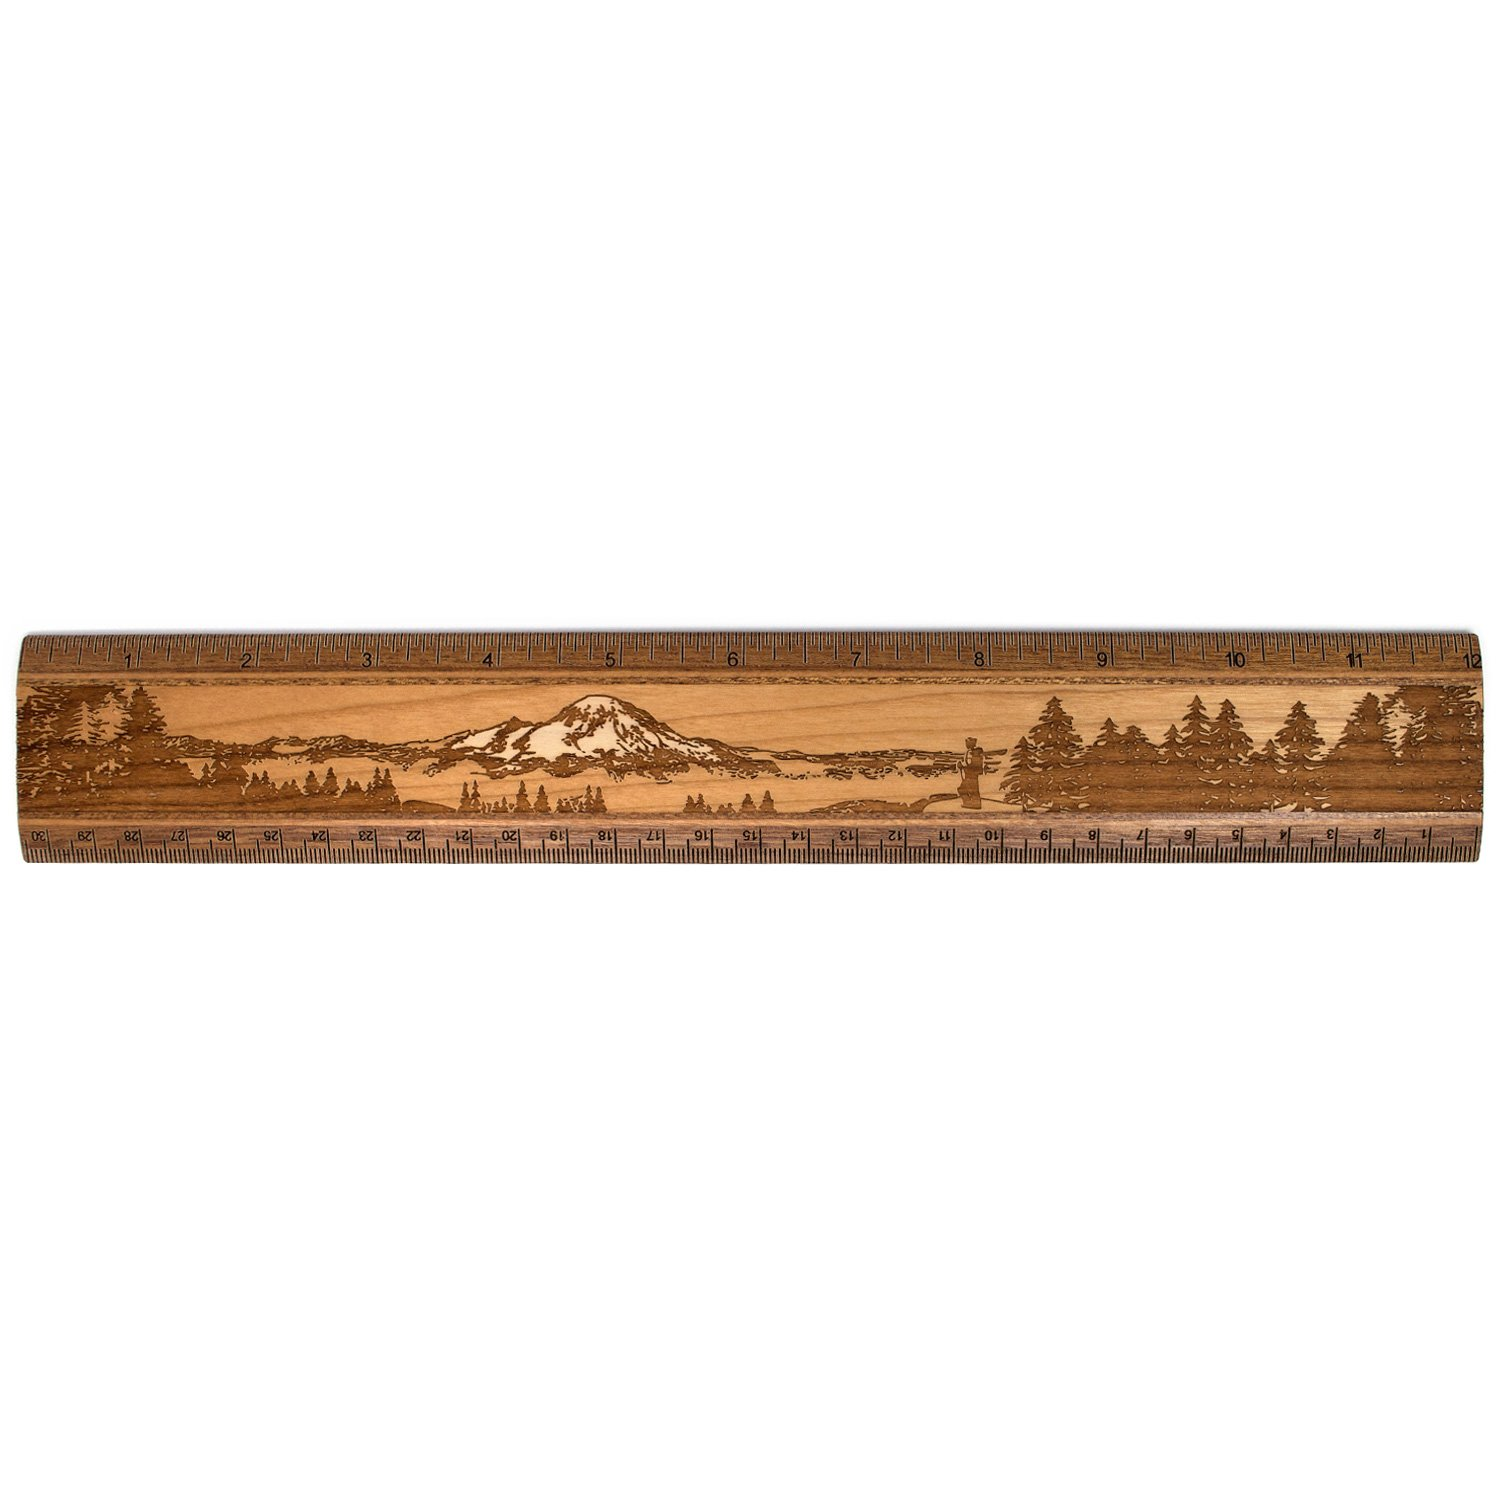 12'' Solid Cherry Wood Artisan Ruler - Mountain Wilderness Hiker - Measures inches & Centimeters - Made in USA